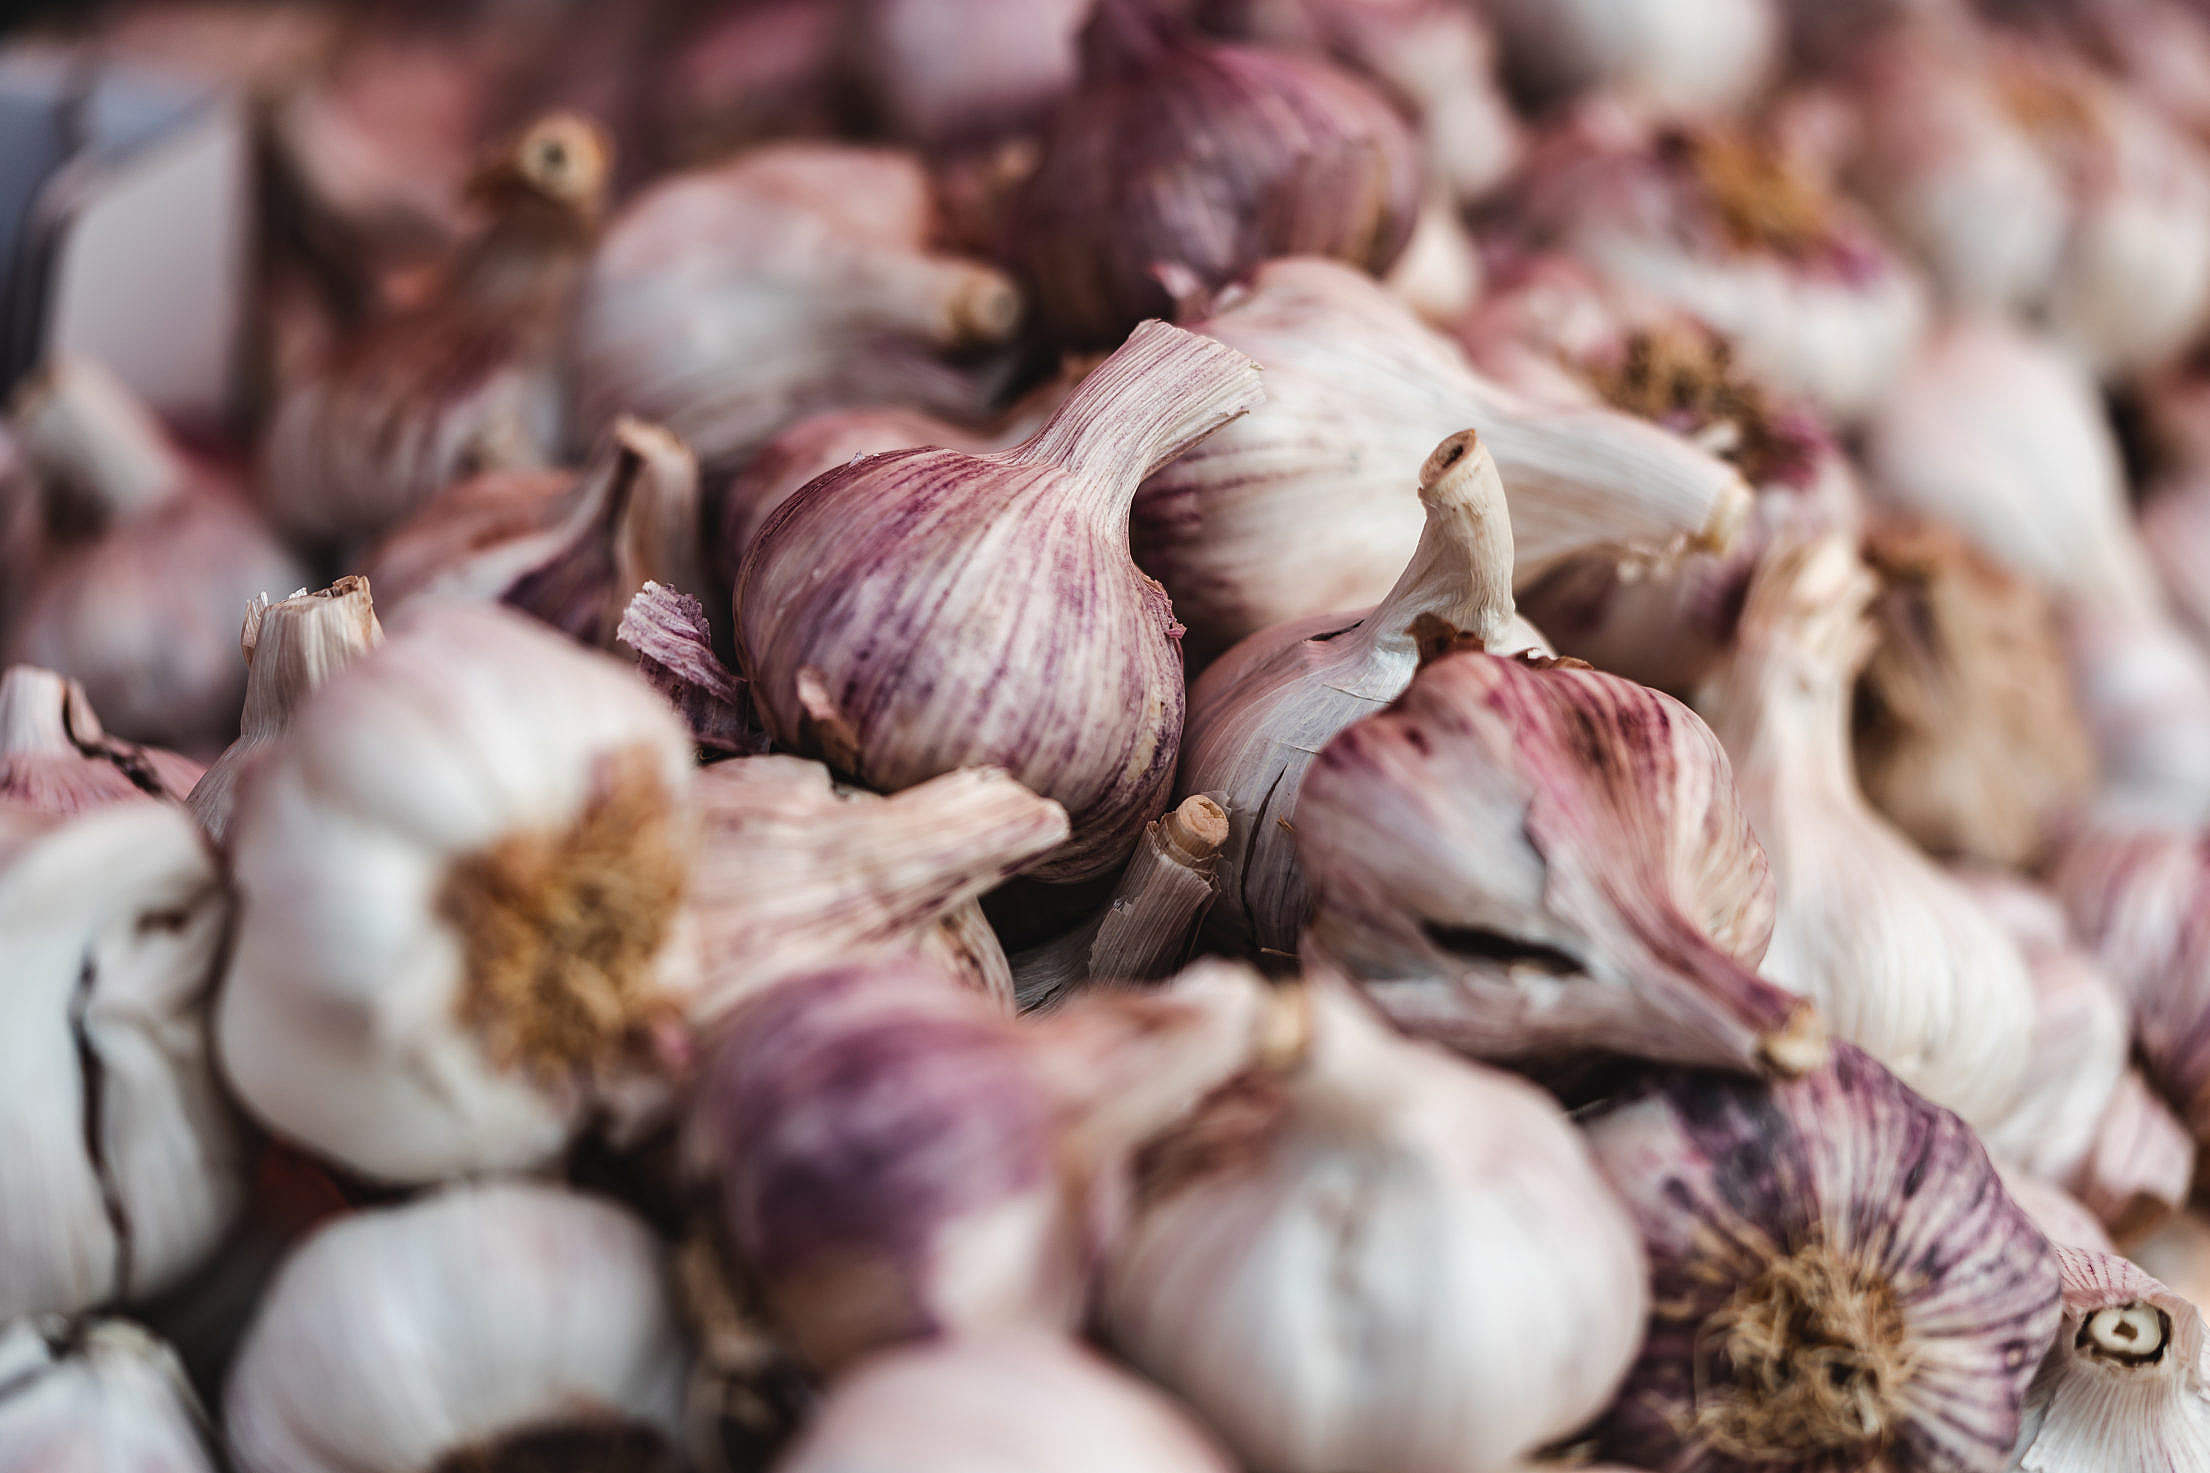 Pile of Garlic Free Stock Photo